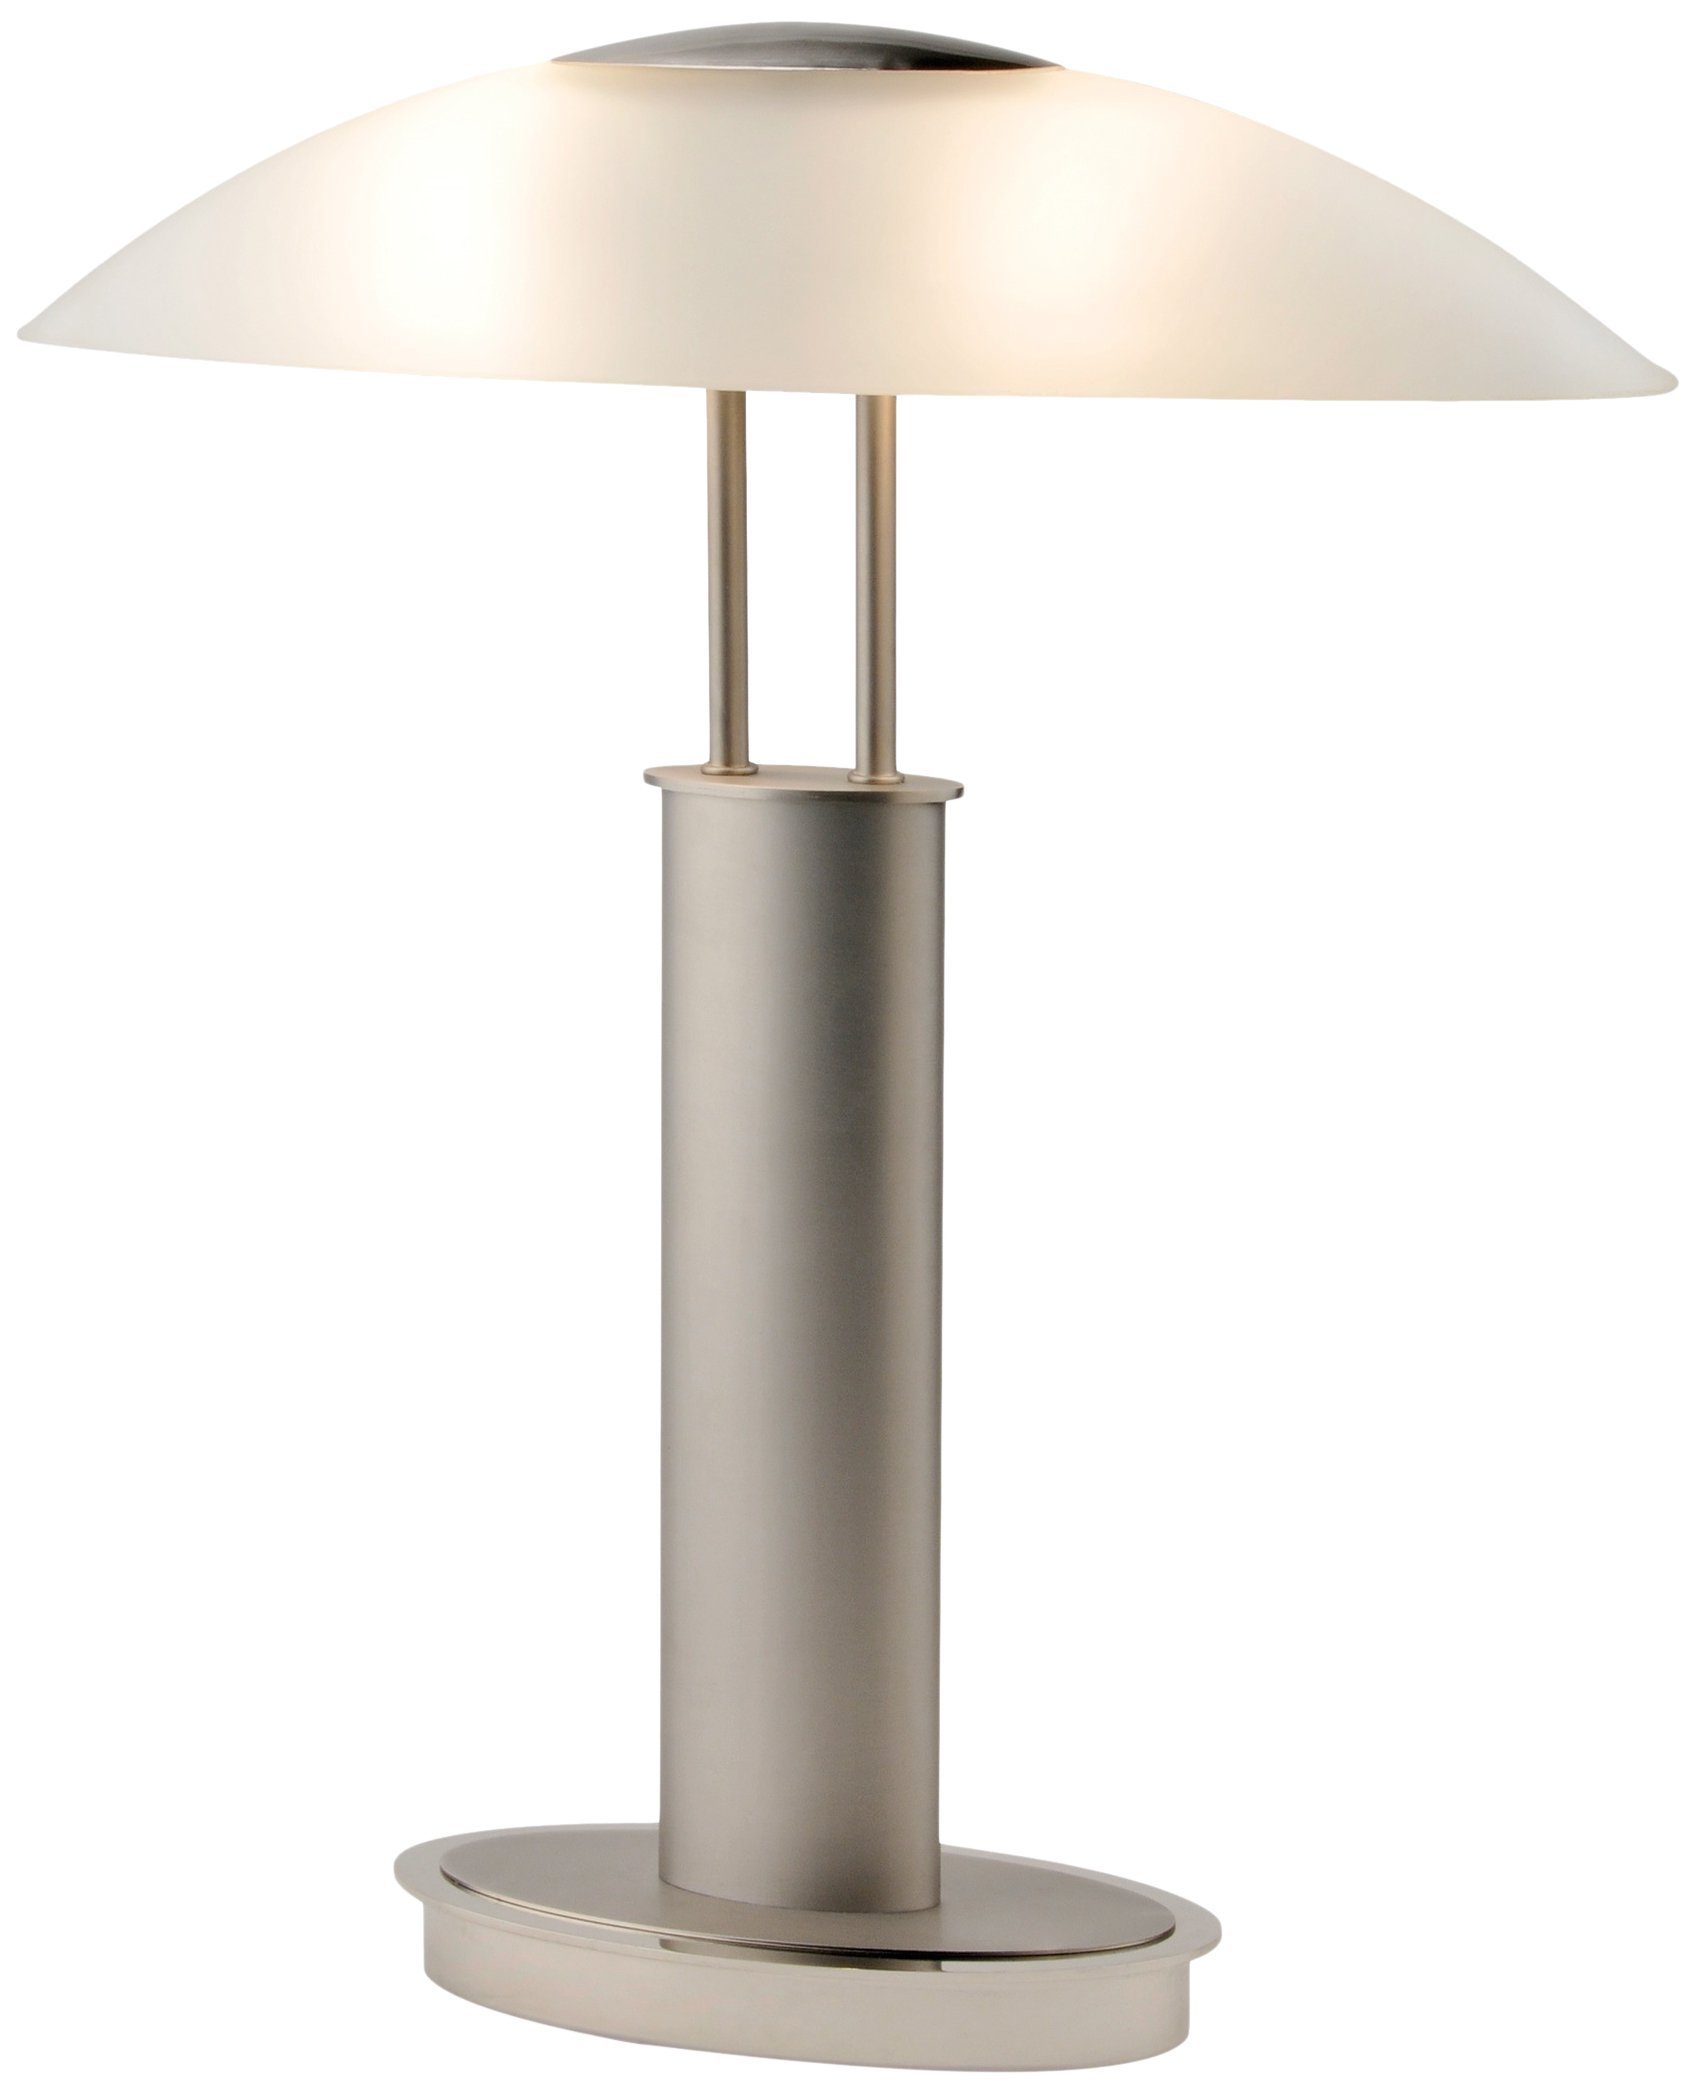 Artiva USA LED9476 Avalon Plus Modern 2-Tone Satin Nickel LED Touch Table Lamp with Oval Frosted Glass Shade, 18.5'', Brushed Steel by Artiva USA